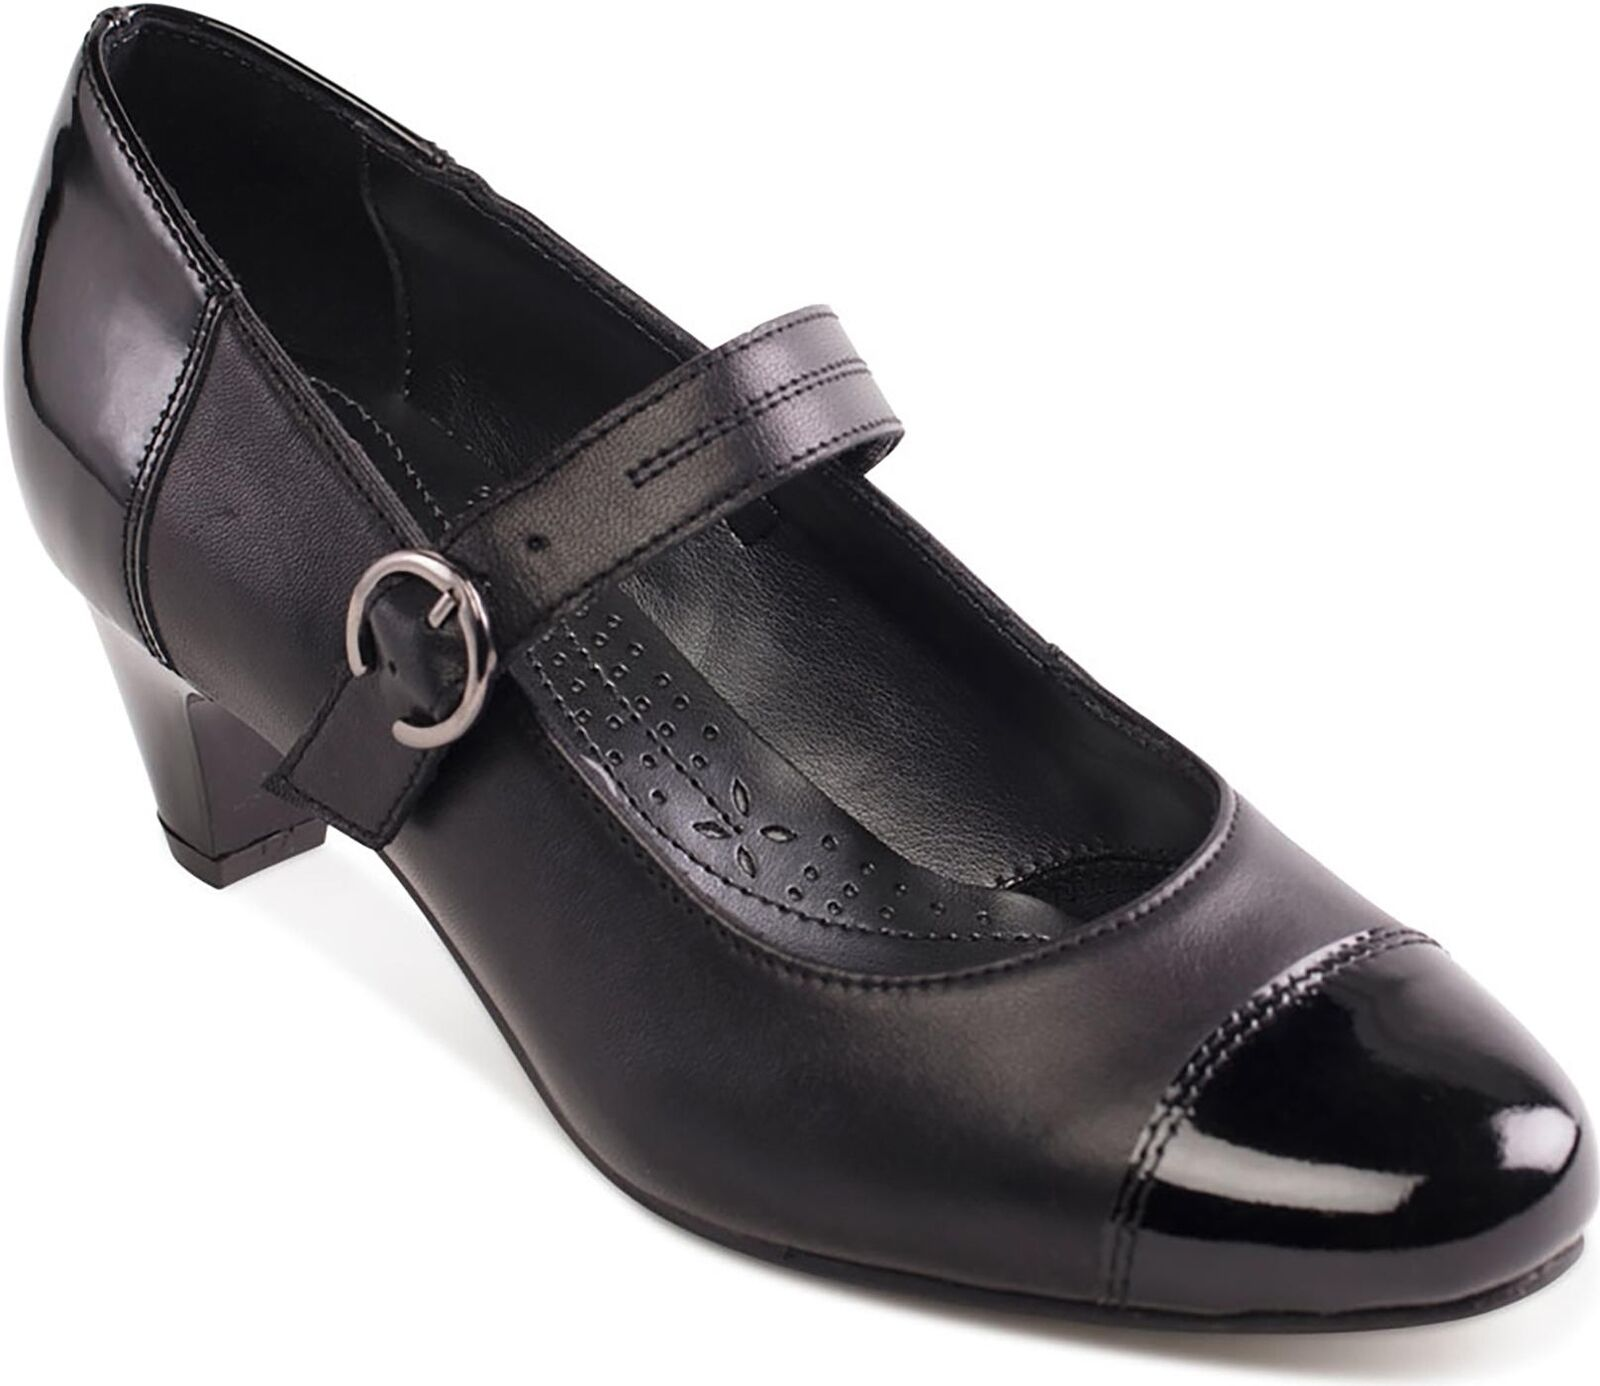 Padders JEAN Ladies Womens Leather Extra Extra Extra Wide (2E) Mary Jane Heeled shoes Black 7add9b